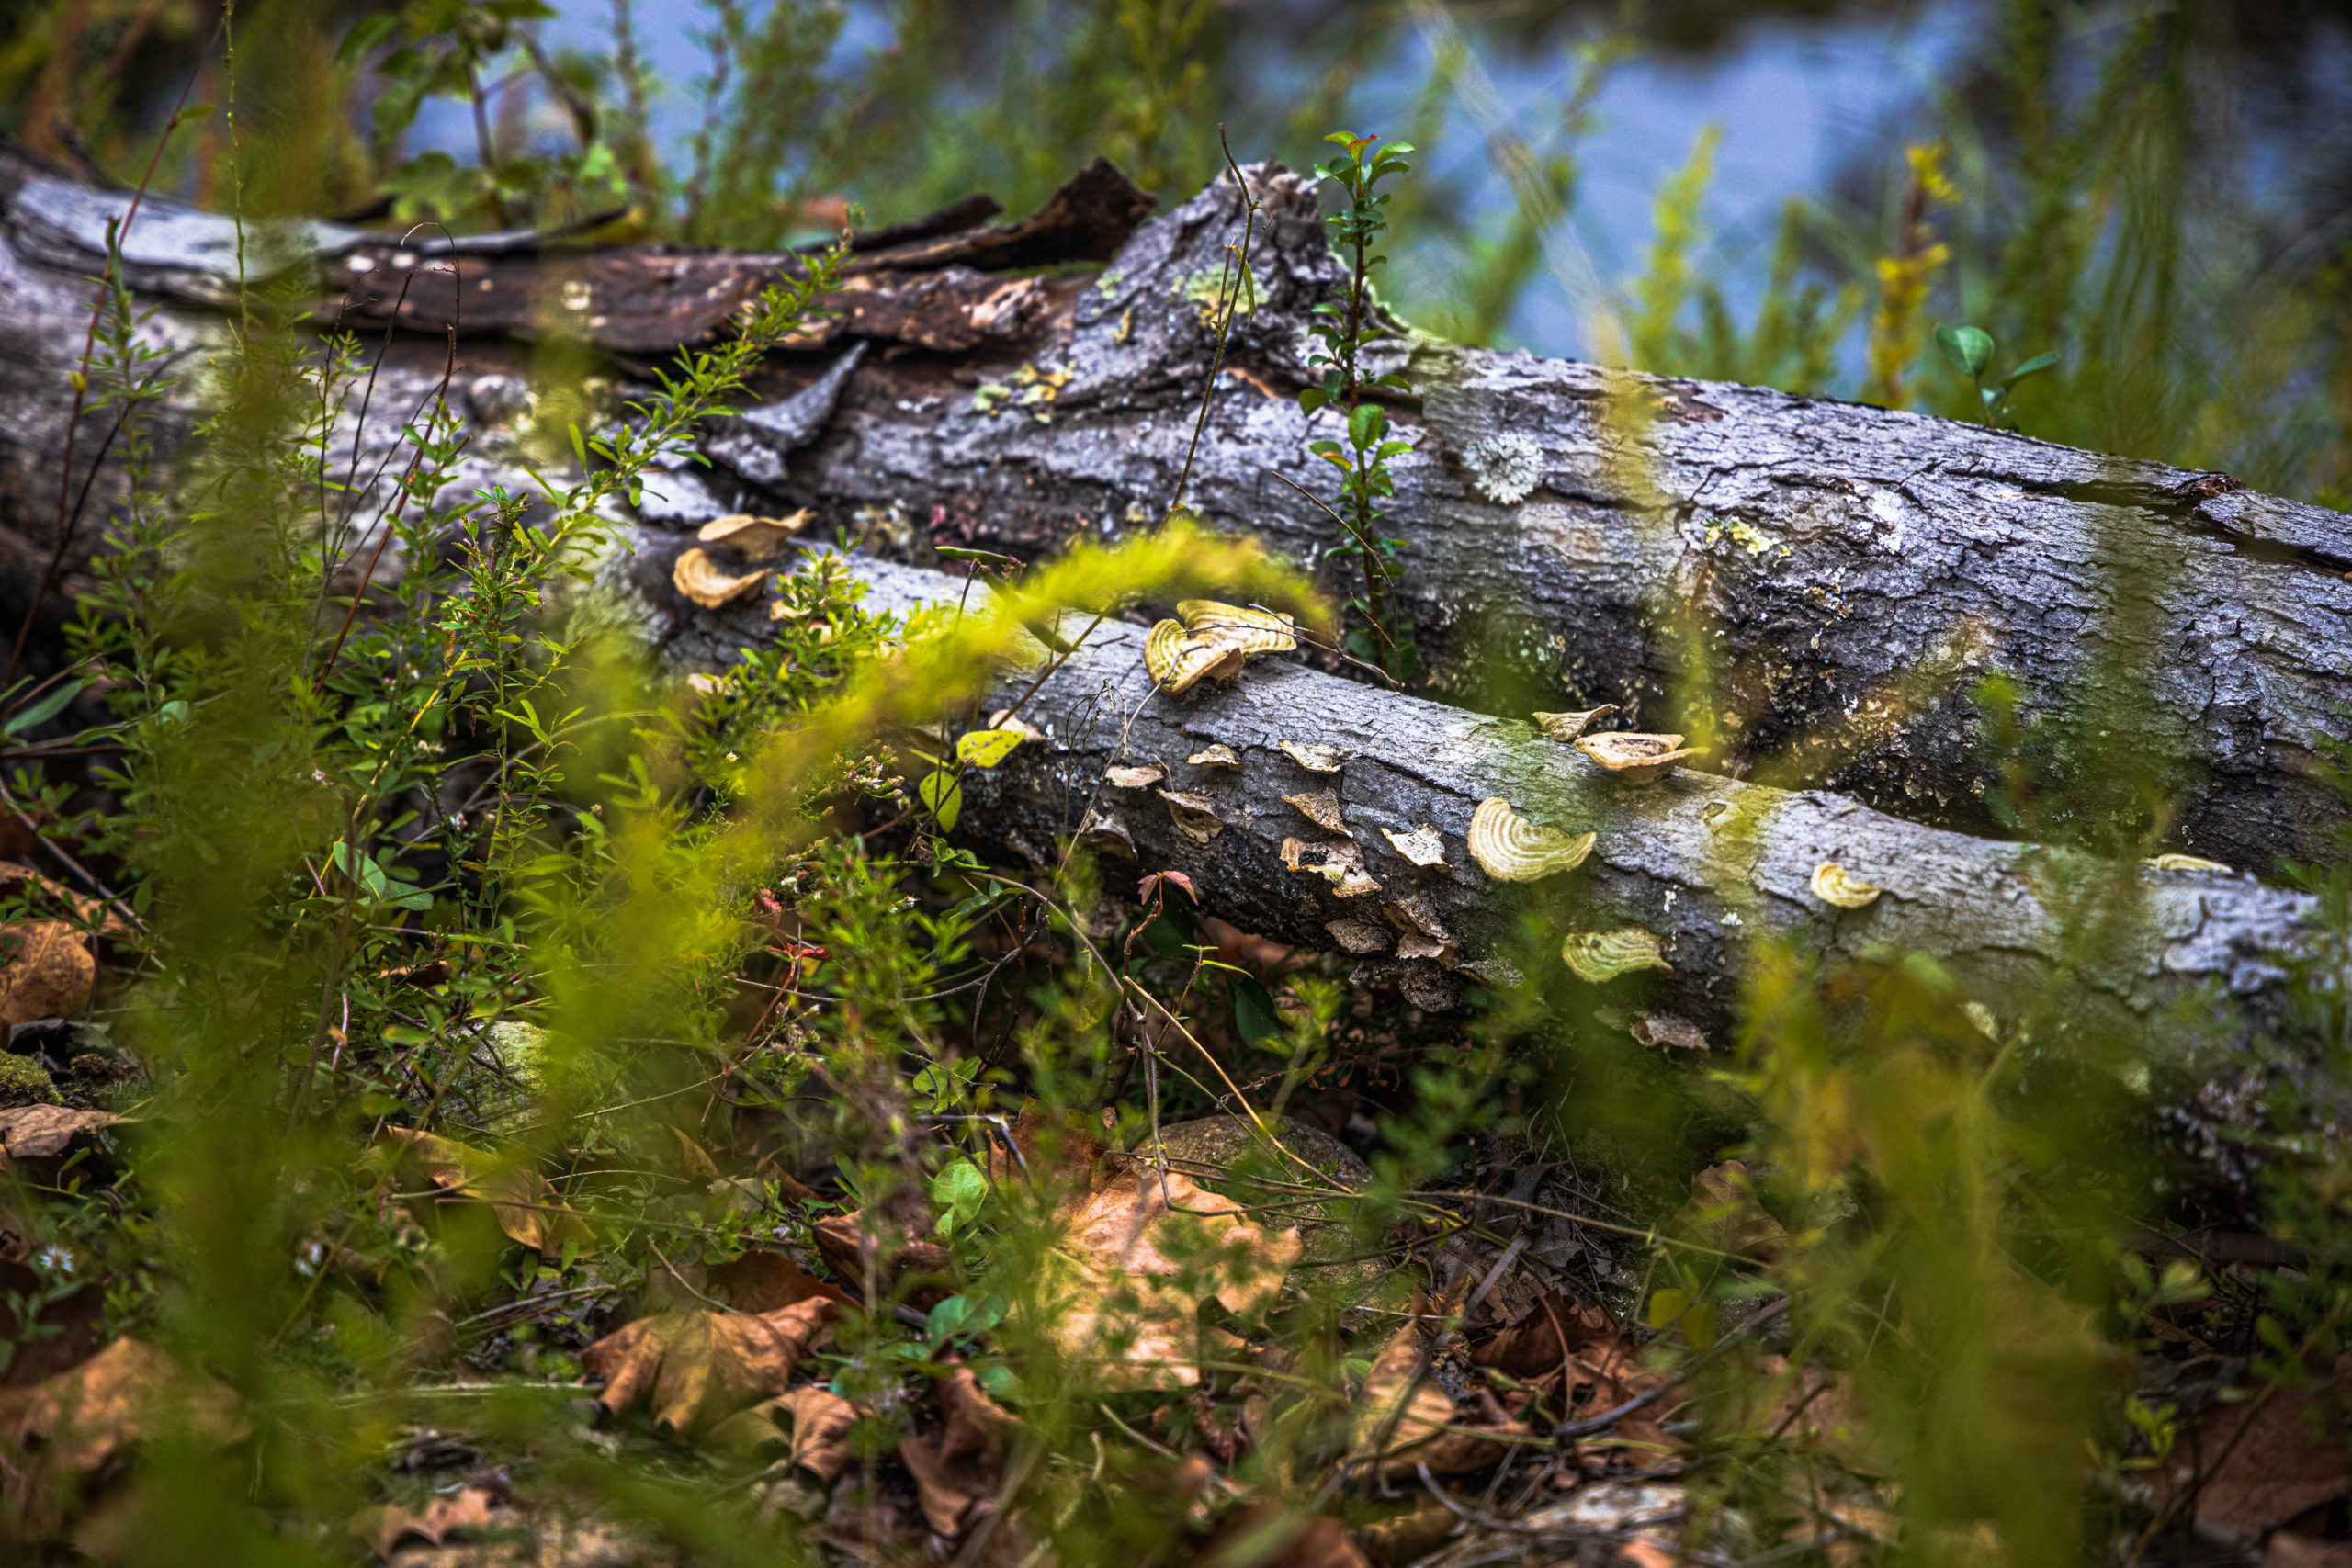 Decaying log with mushrooms growing from it, sitting in the midground, with grass and flowering plants in the foreground, and water in the far background.